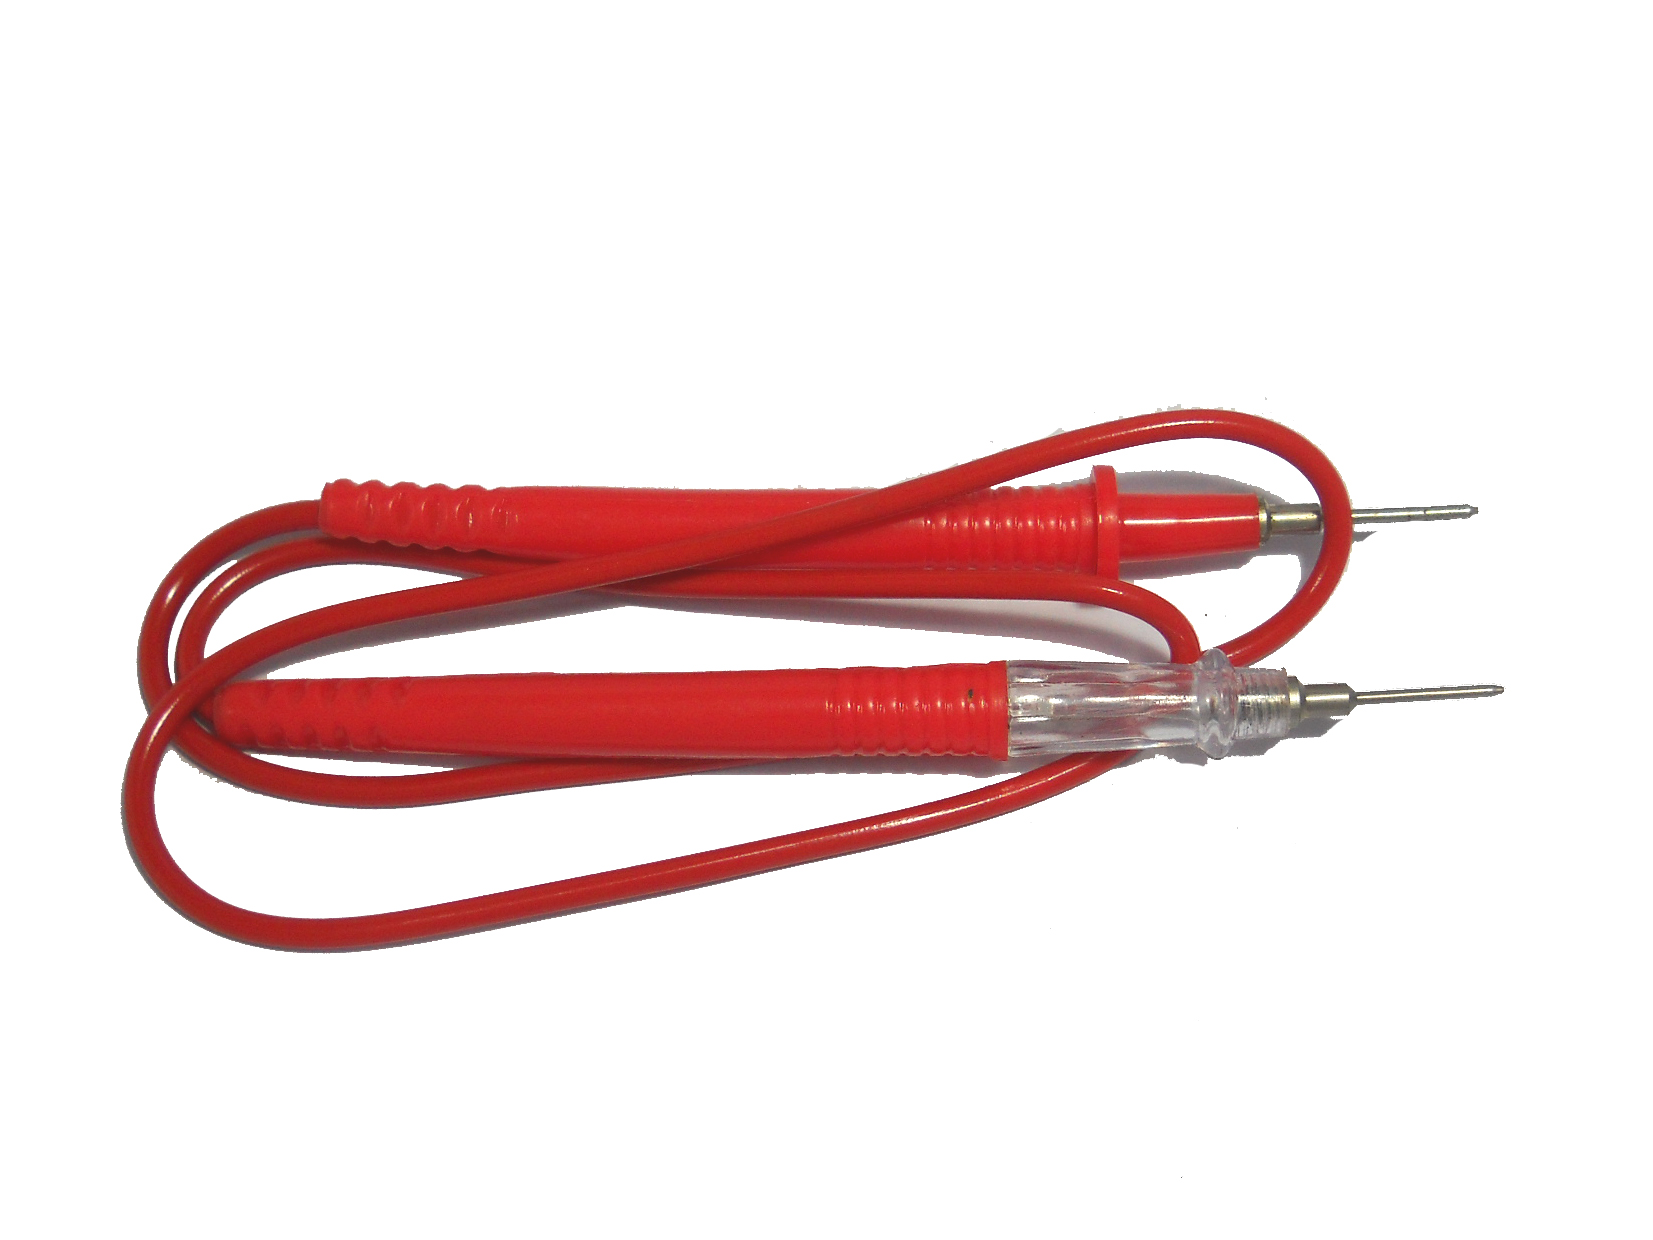 File:Electrical Continuity tester.jpg - Wikimedia Commons